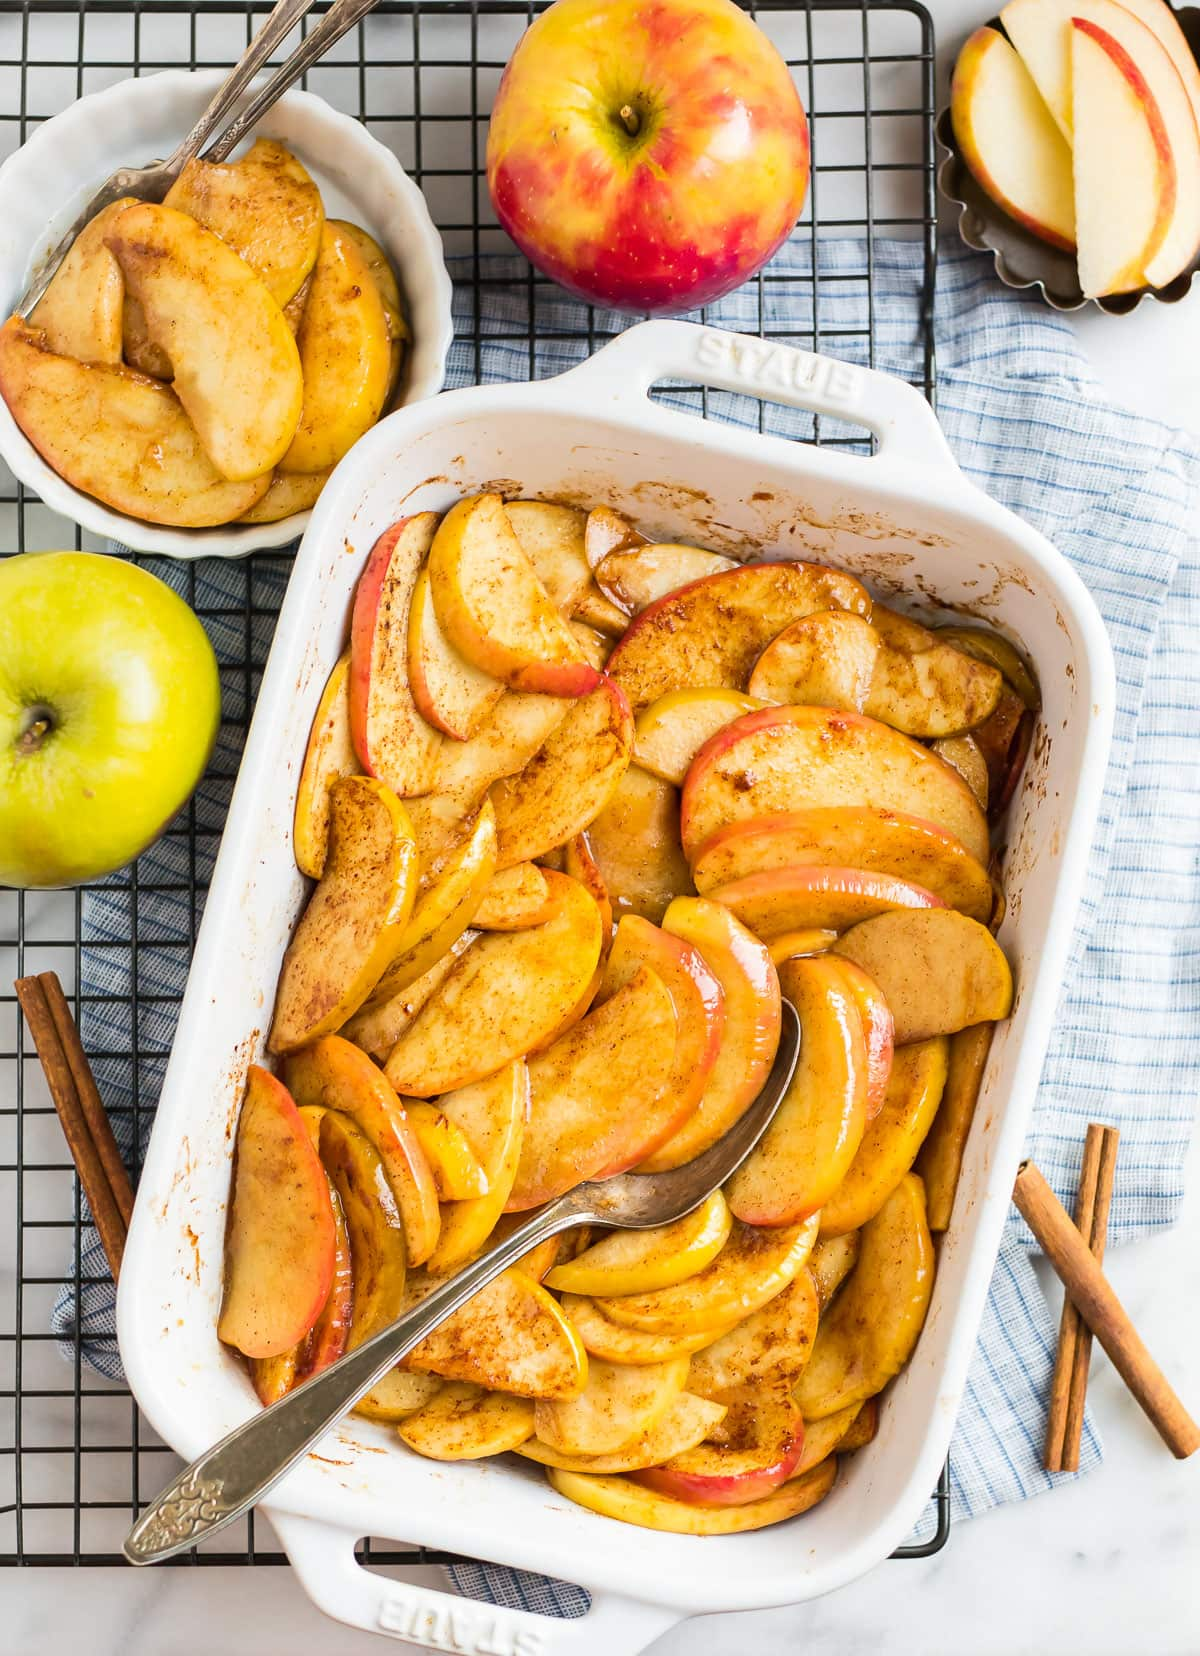 Healthy baked apples in a baking dish